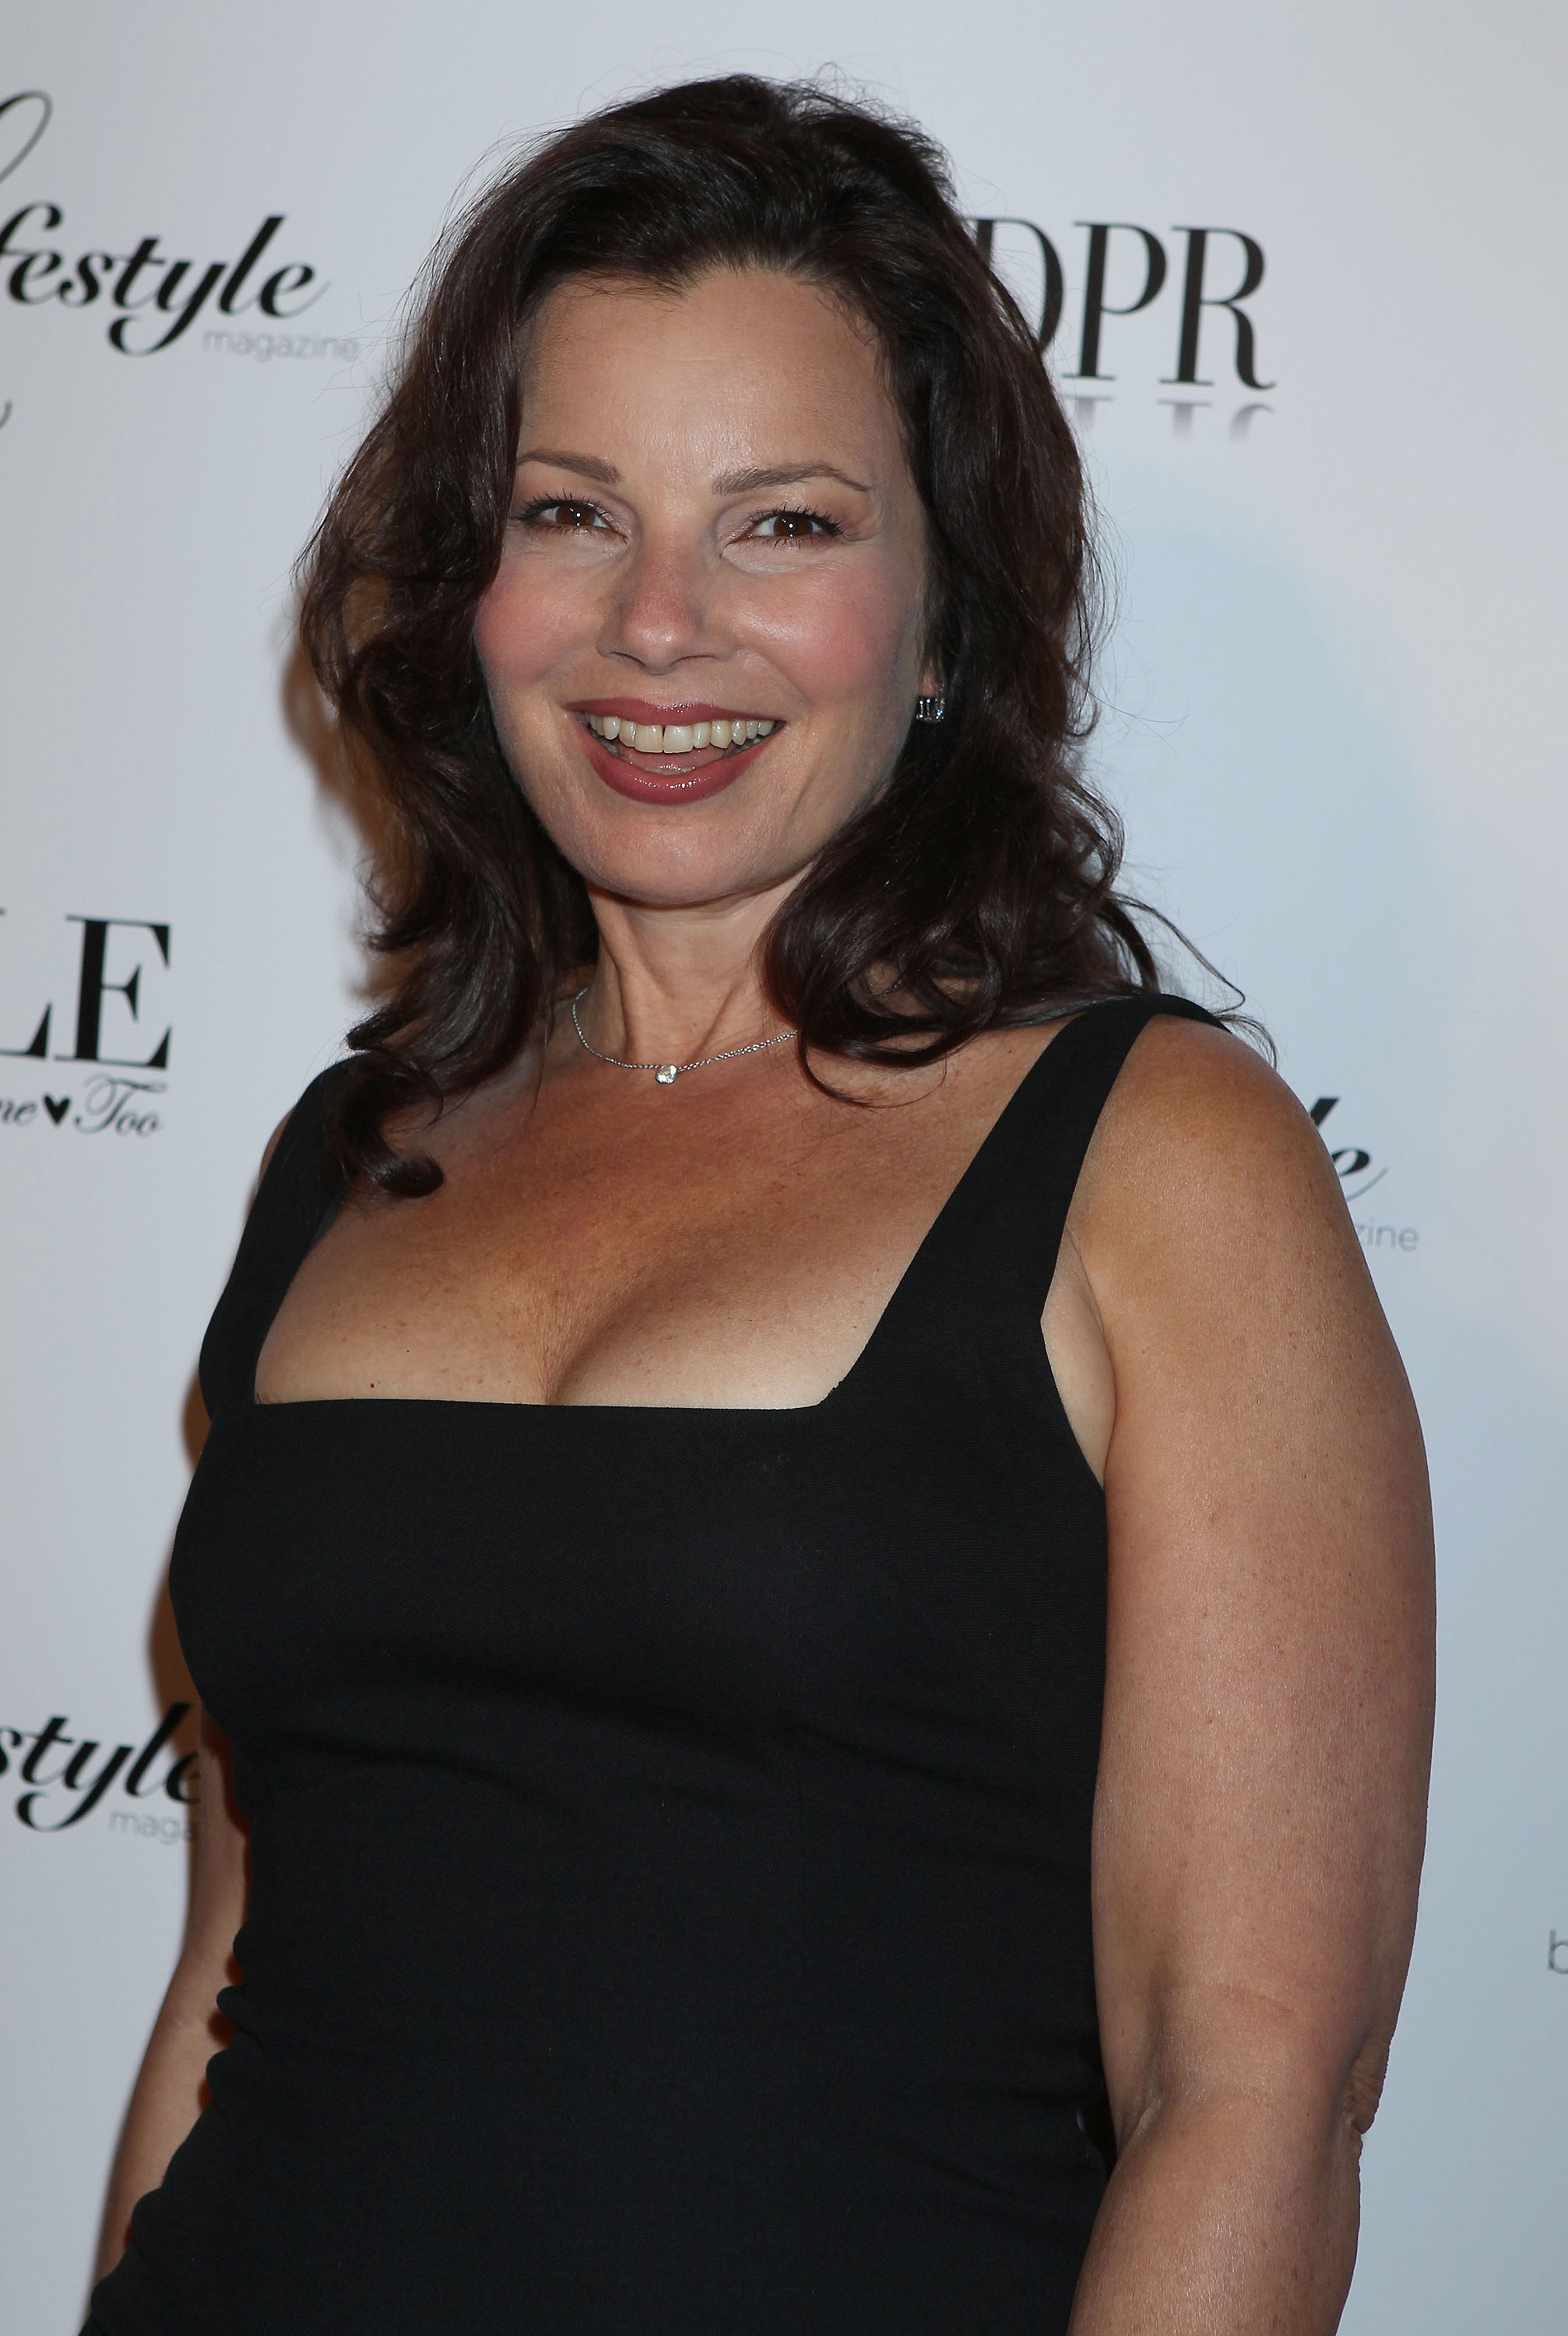 Fran Drescher Quotes: Whatever Happend To What's Her/his Name? On Pinterest